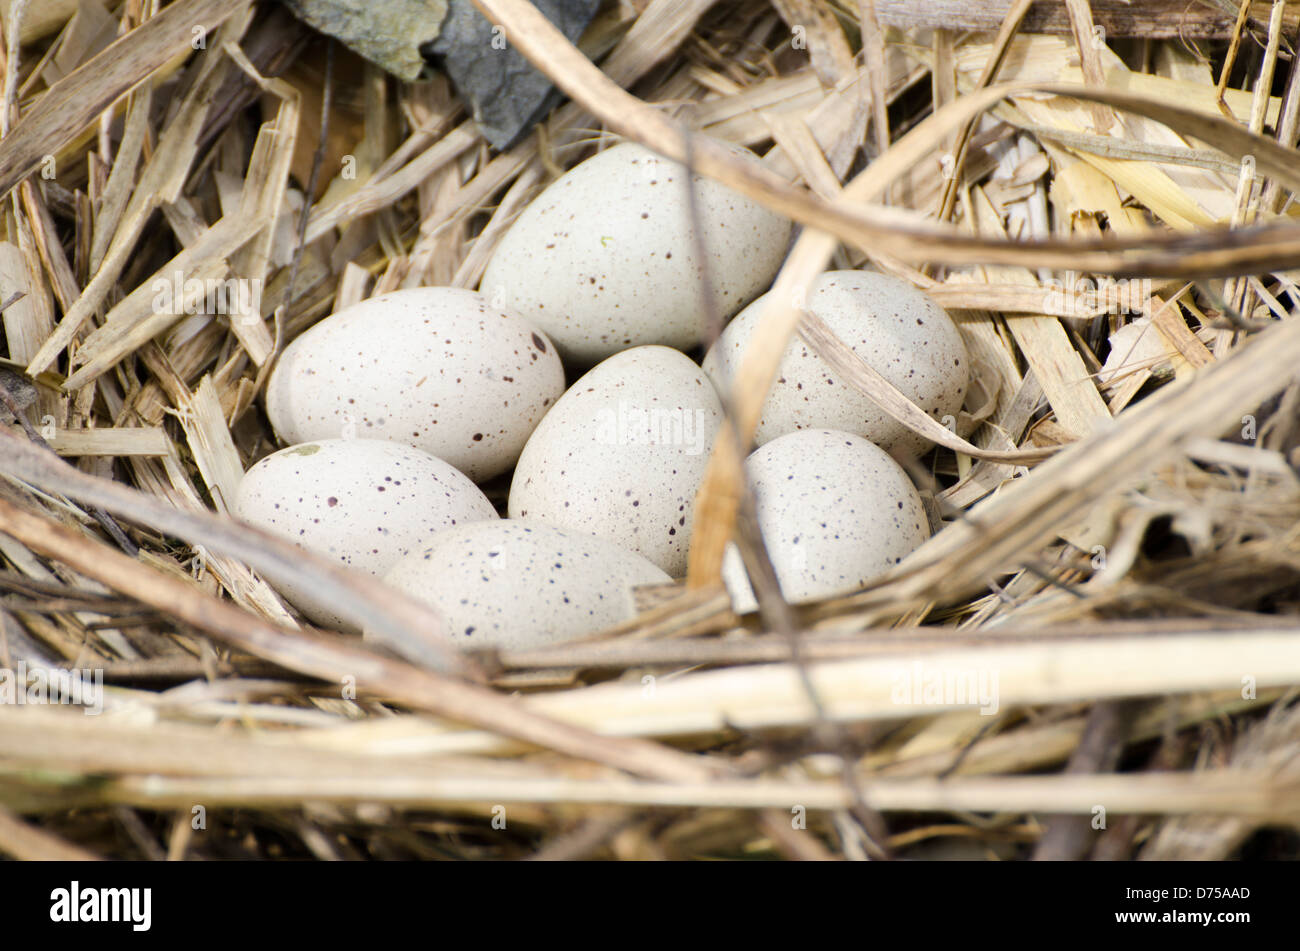 Coot ((Fulica atra) eggs in a nest. - Stock Image